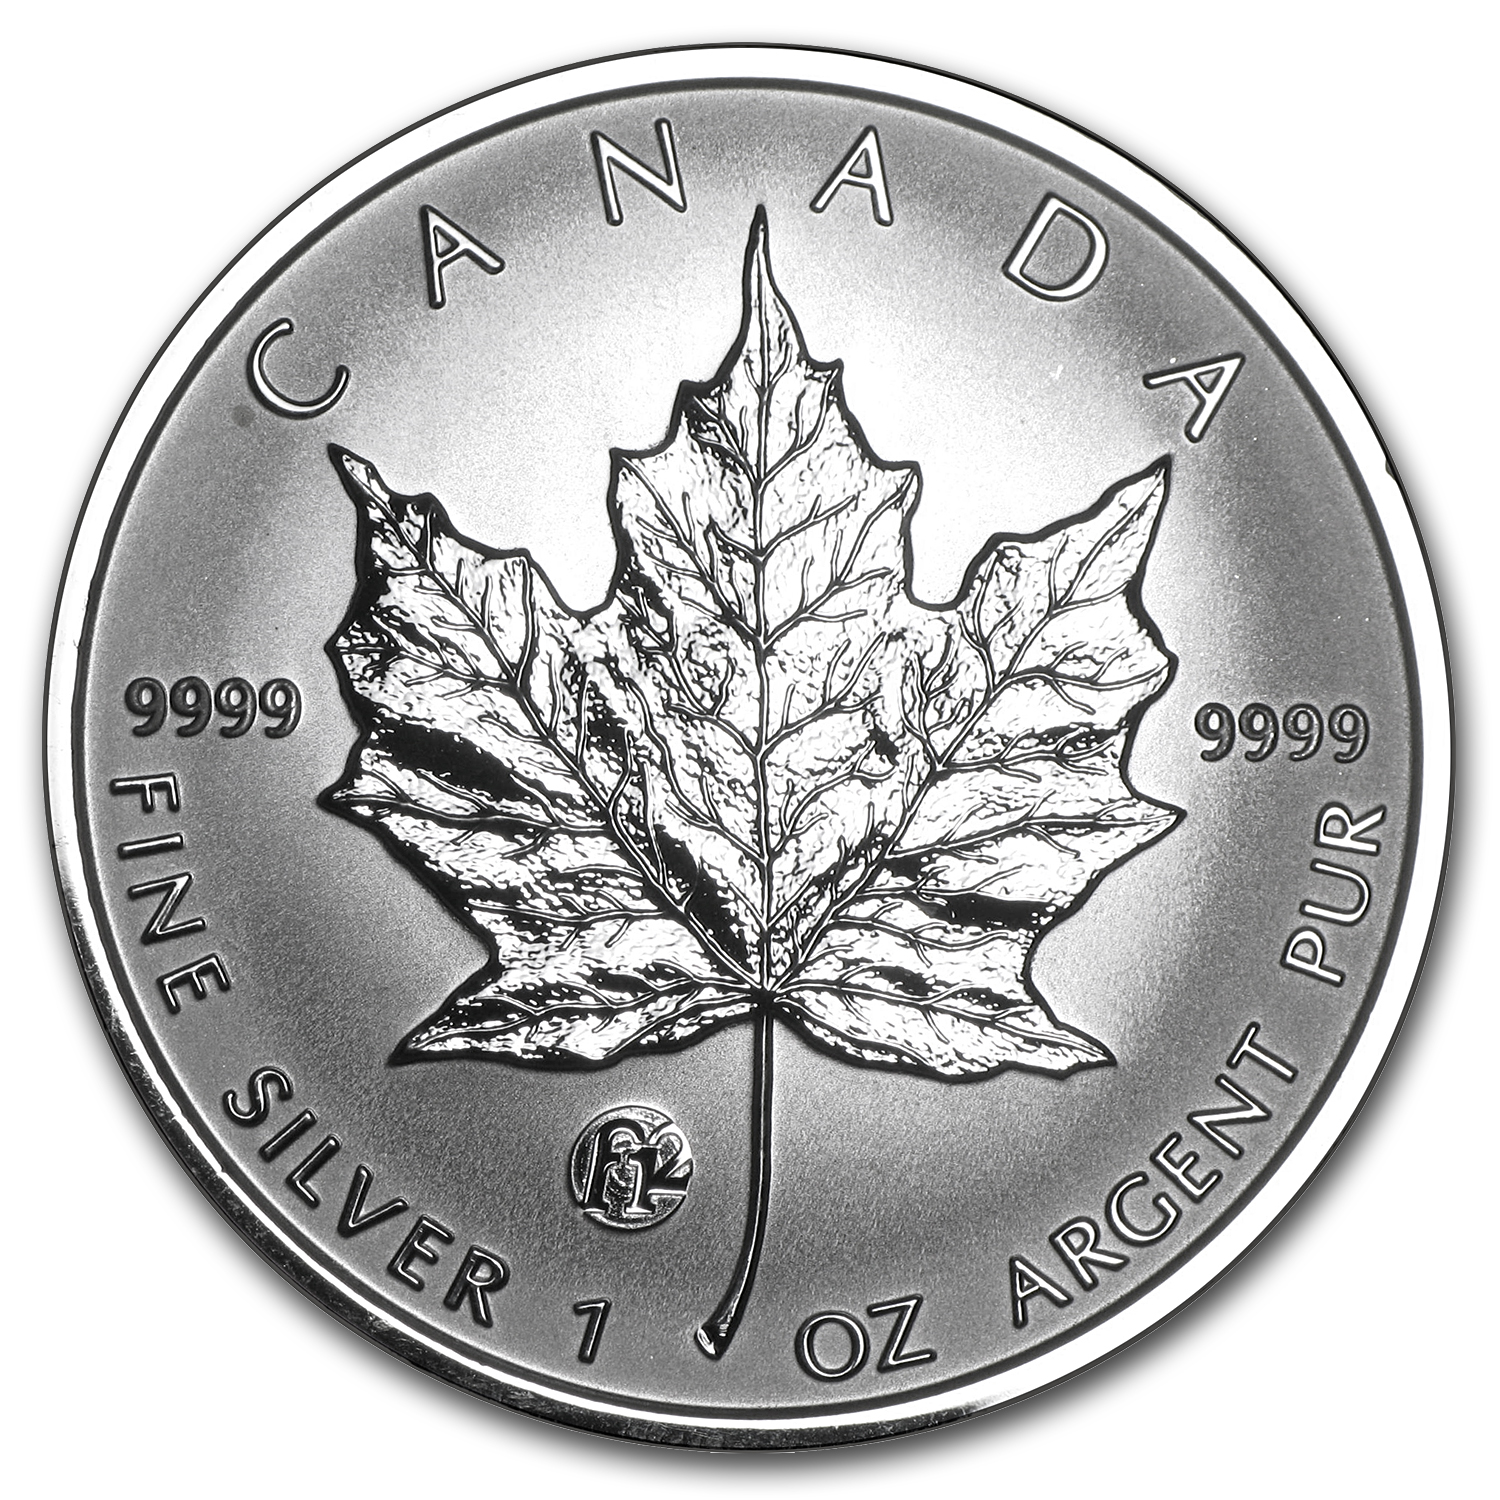 2007 1 oz Silver Canadian Maple Leaf (F12 Privy)